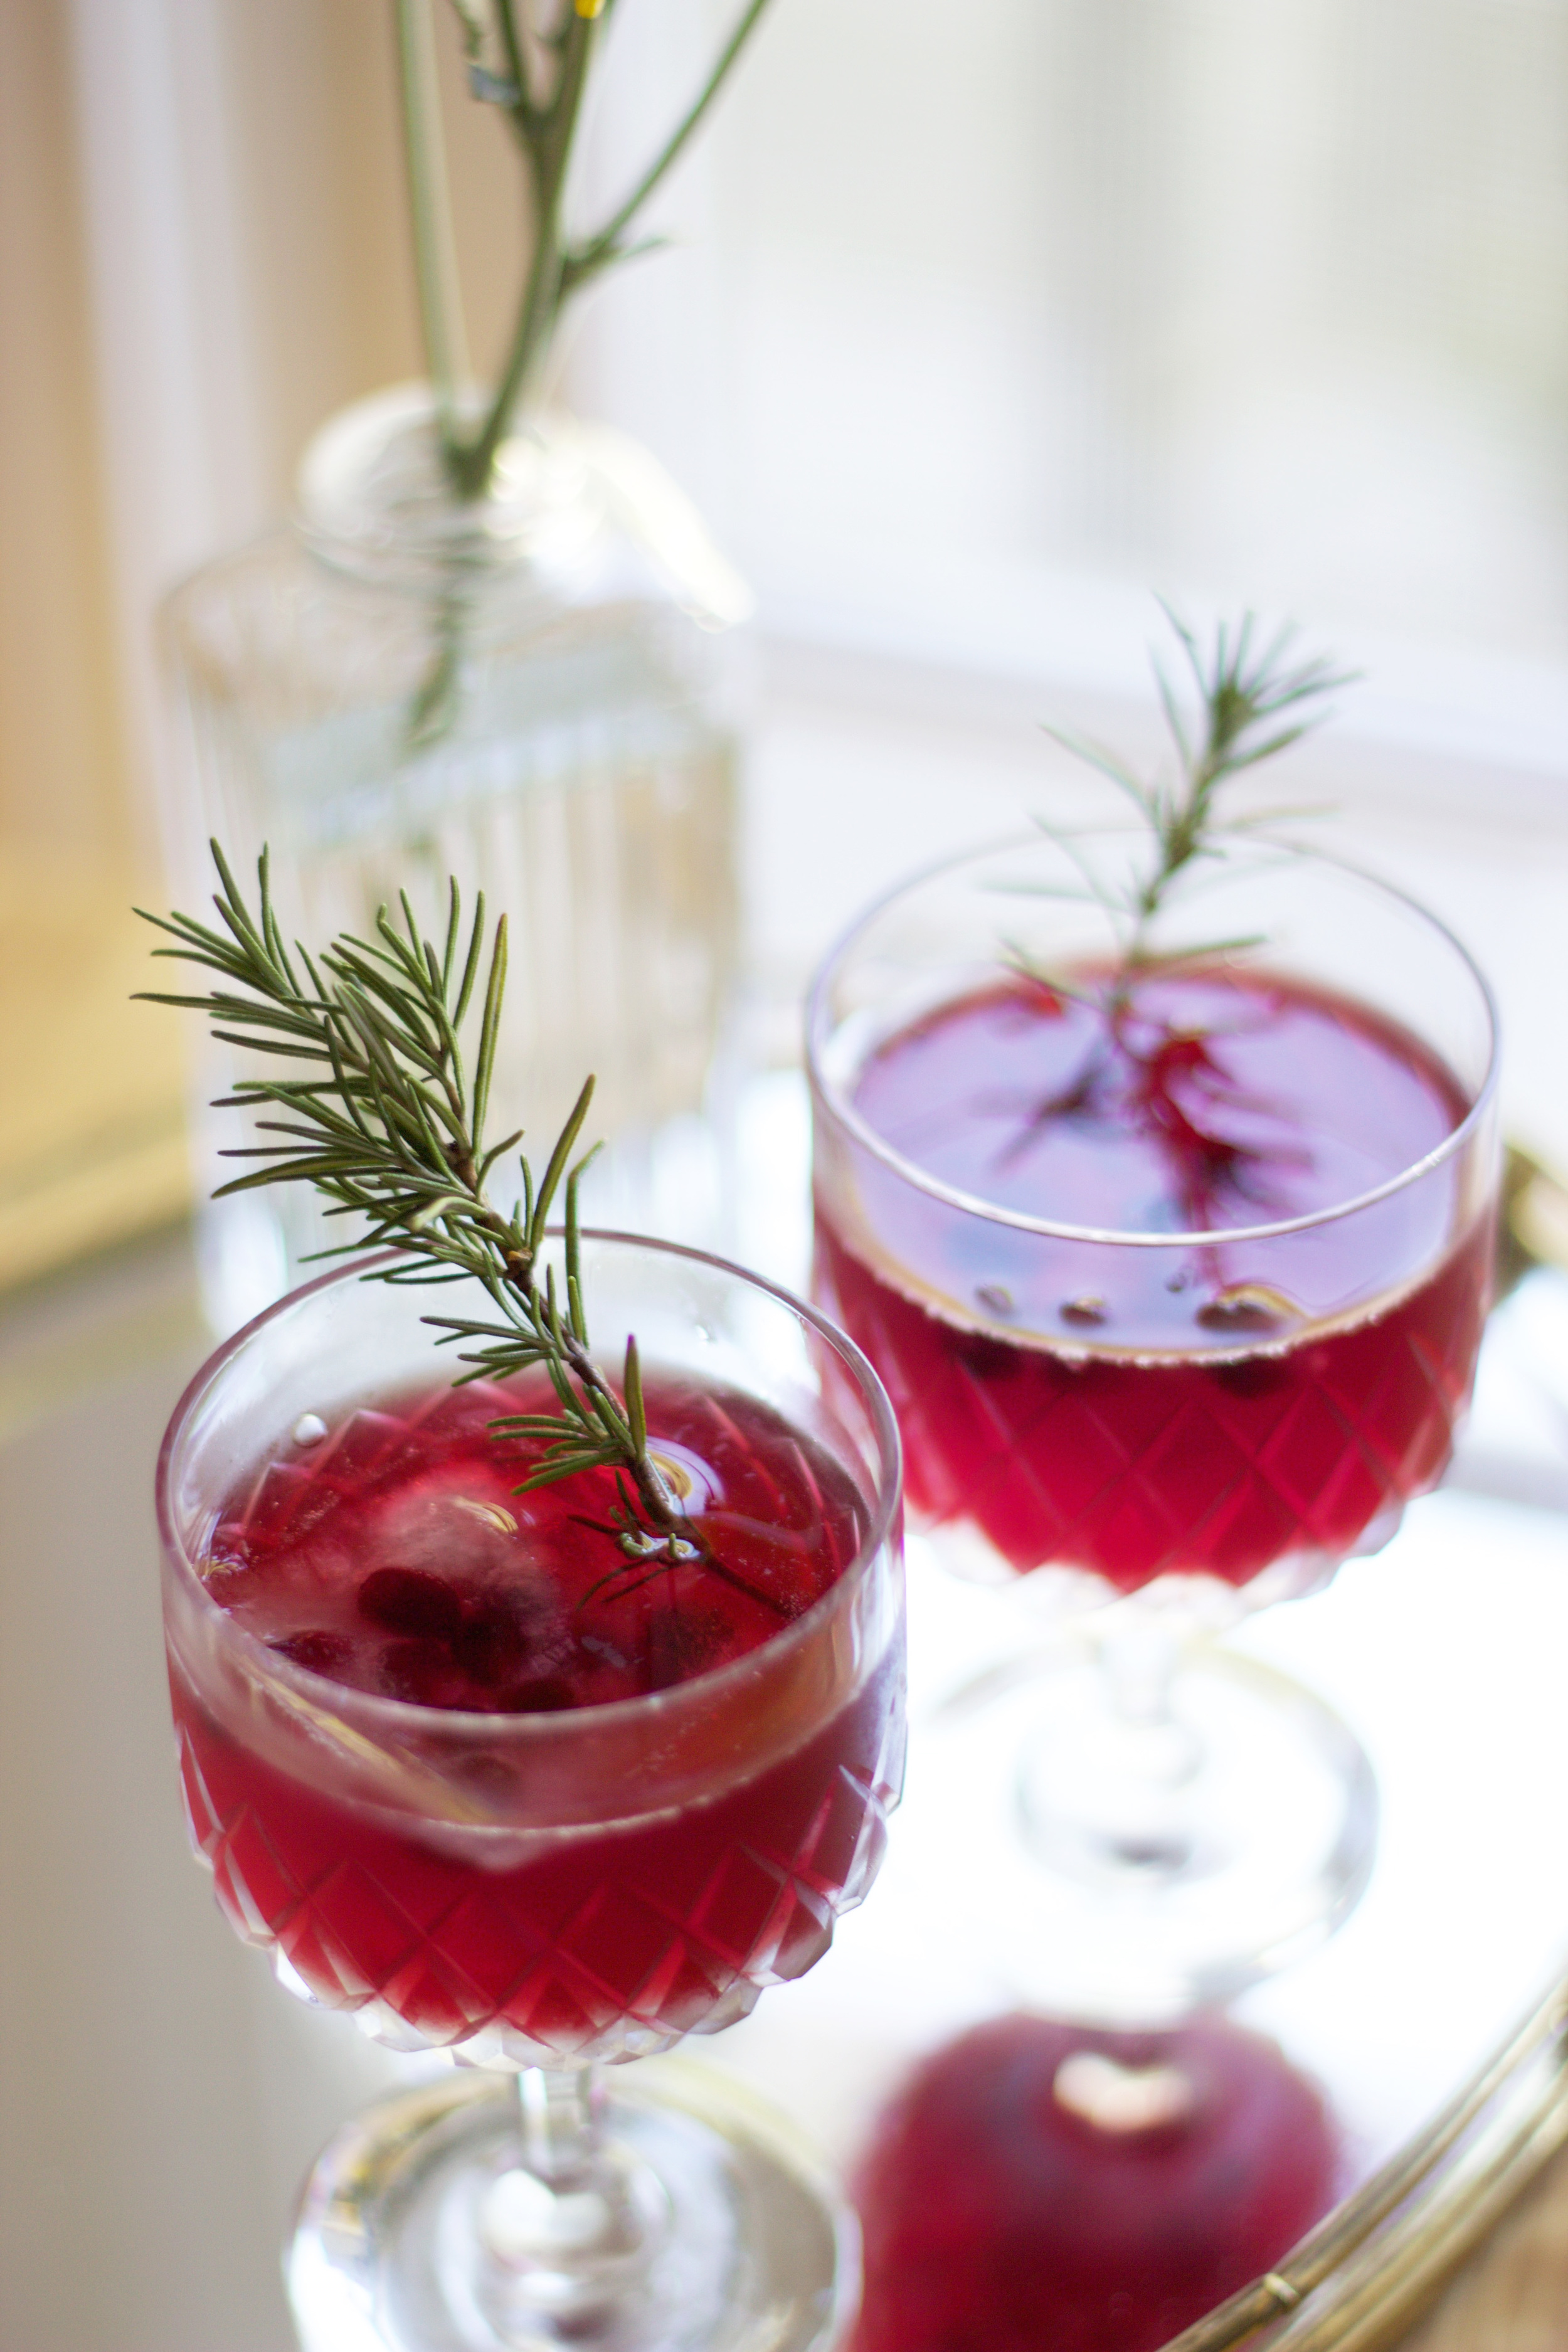 Pomegranate Honey Rosemary Cocktail (www.withmichellekim.com)